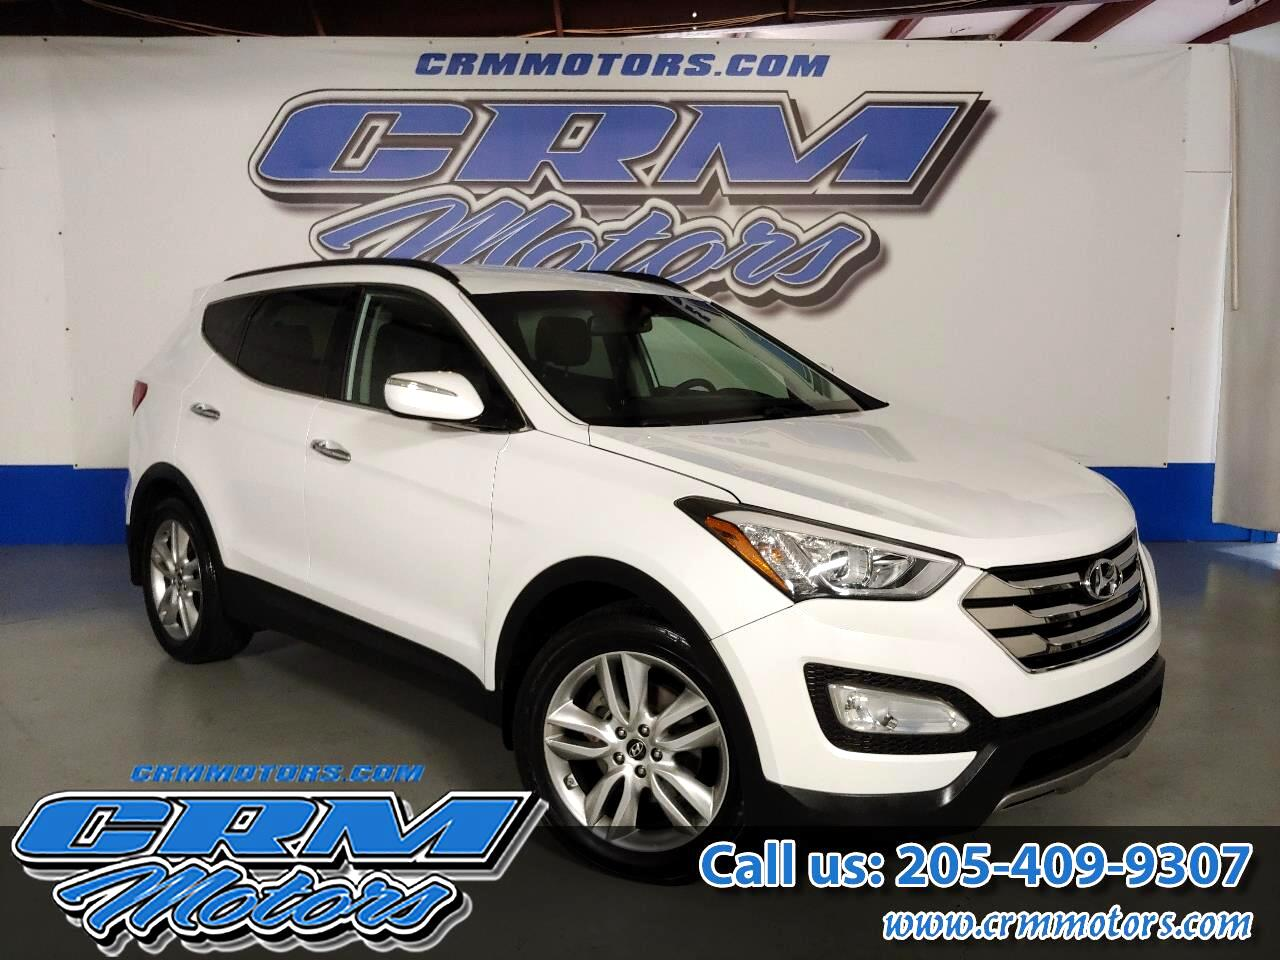 Used 2013 Hyundai Santa Fe Awd 4dr 2 0t Sport For Sale In